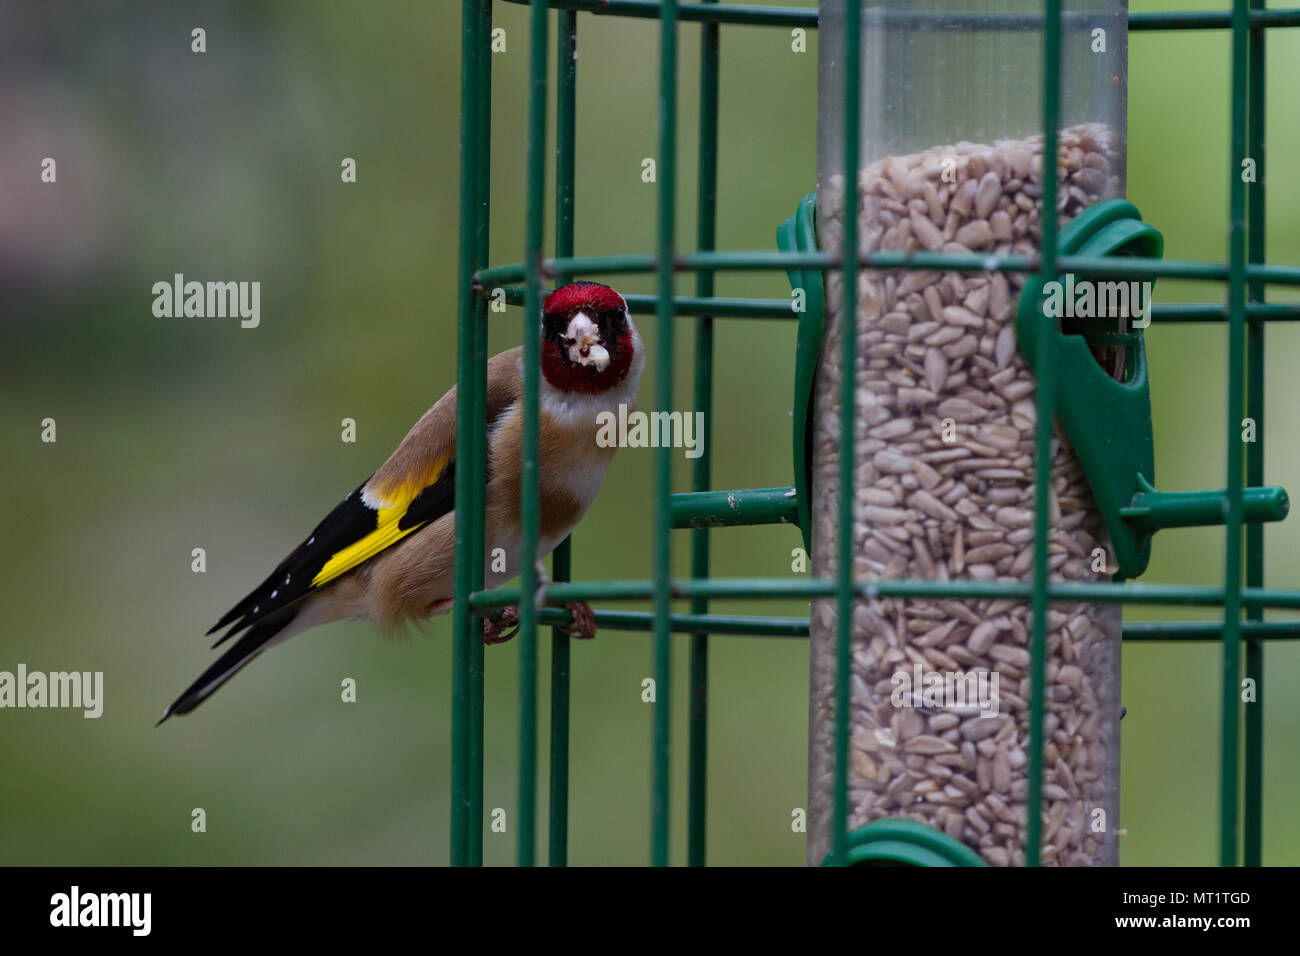 Goldfinch Carduelis carduelis Single adult on squirrel proof seed feeder. British Isles - Stock Image